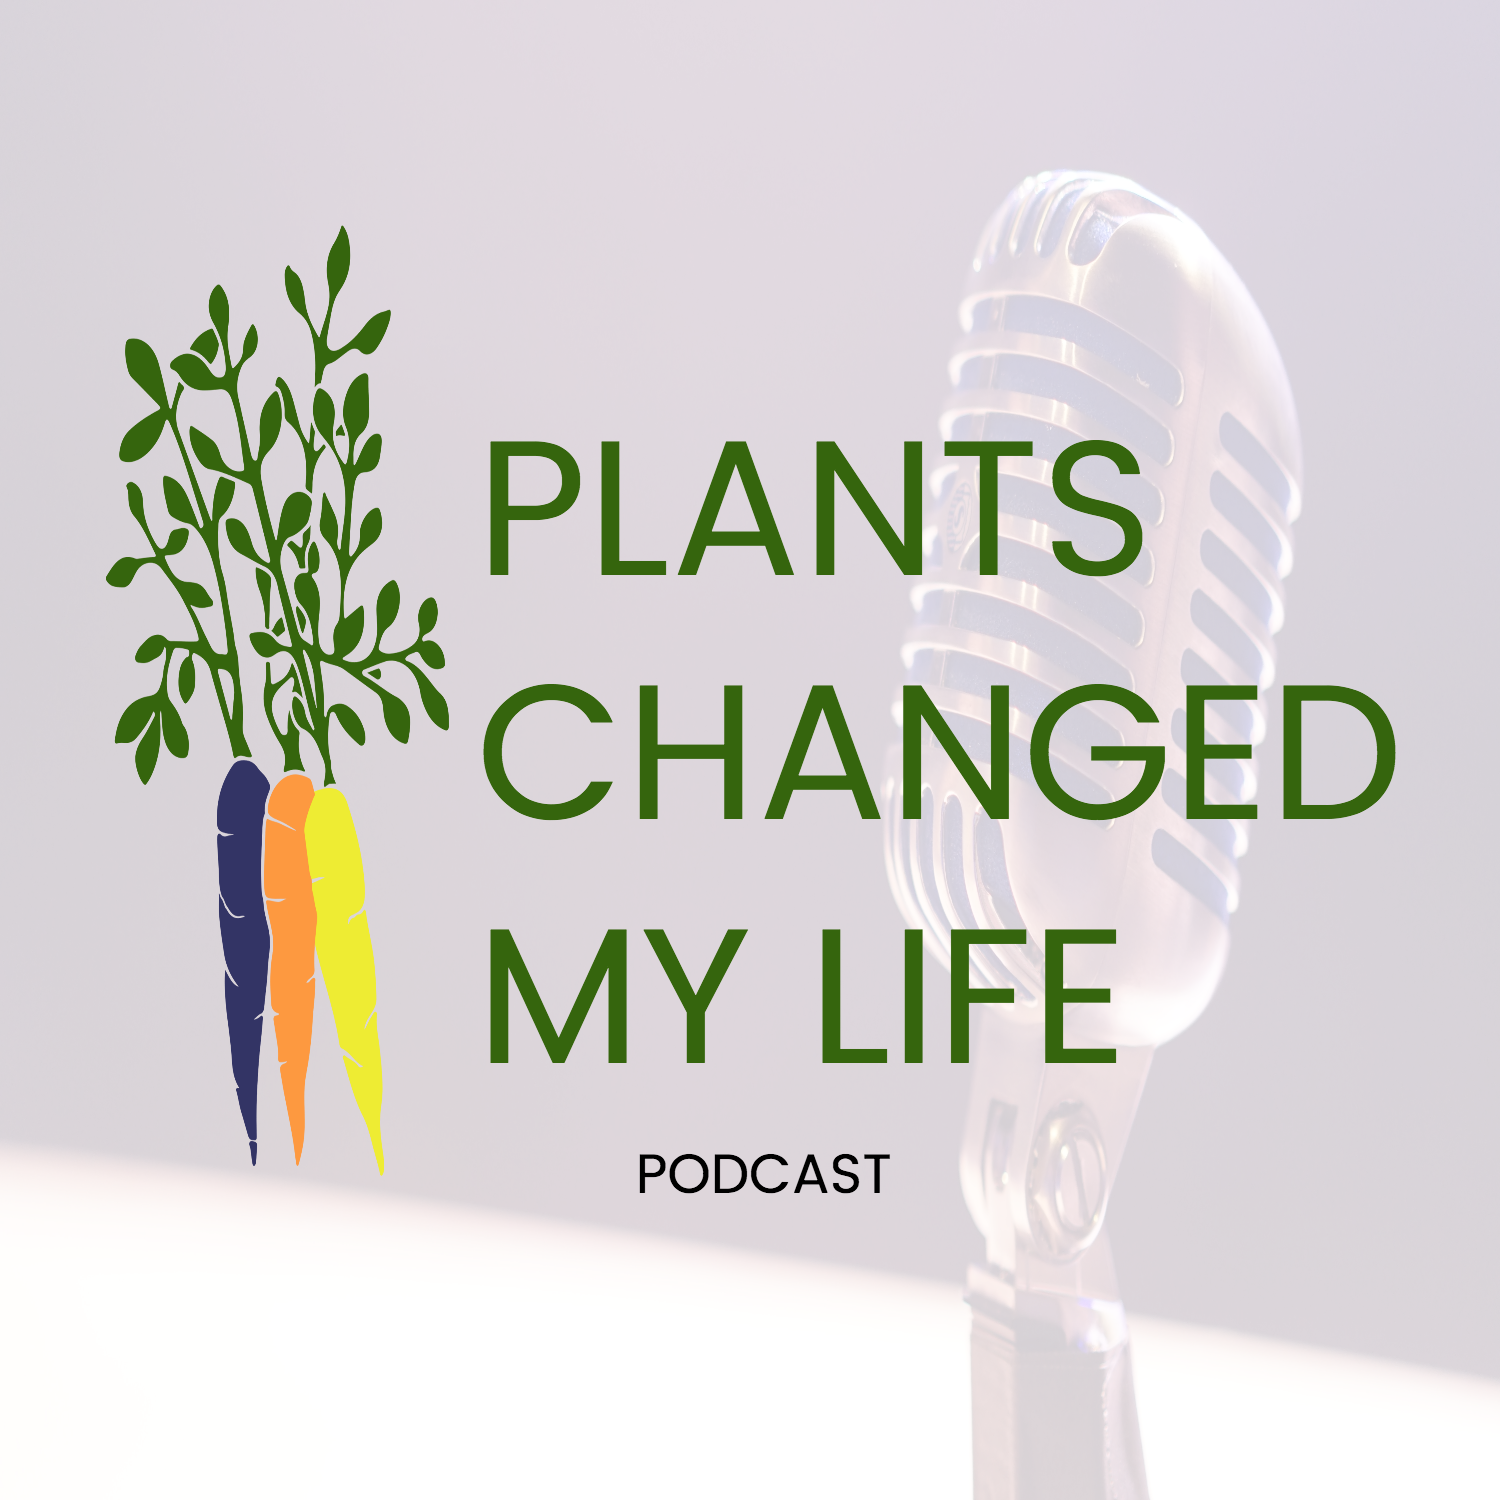 Plants Changed My Life